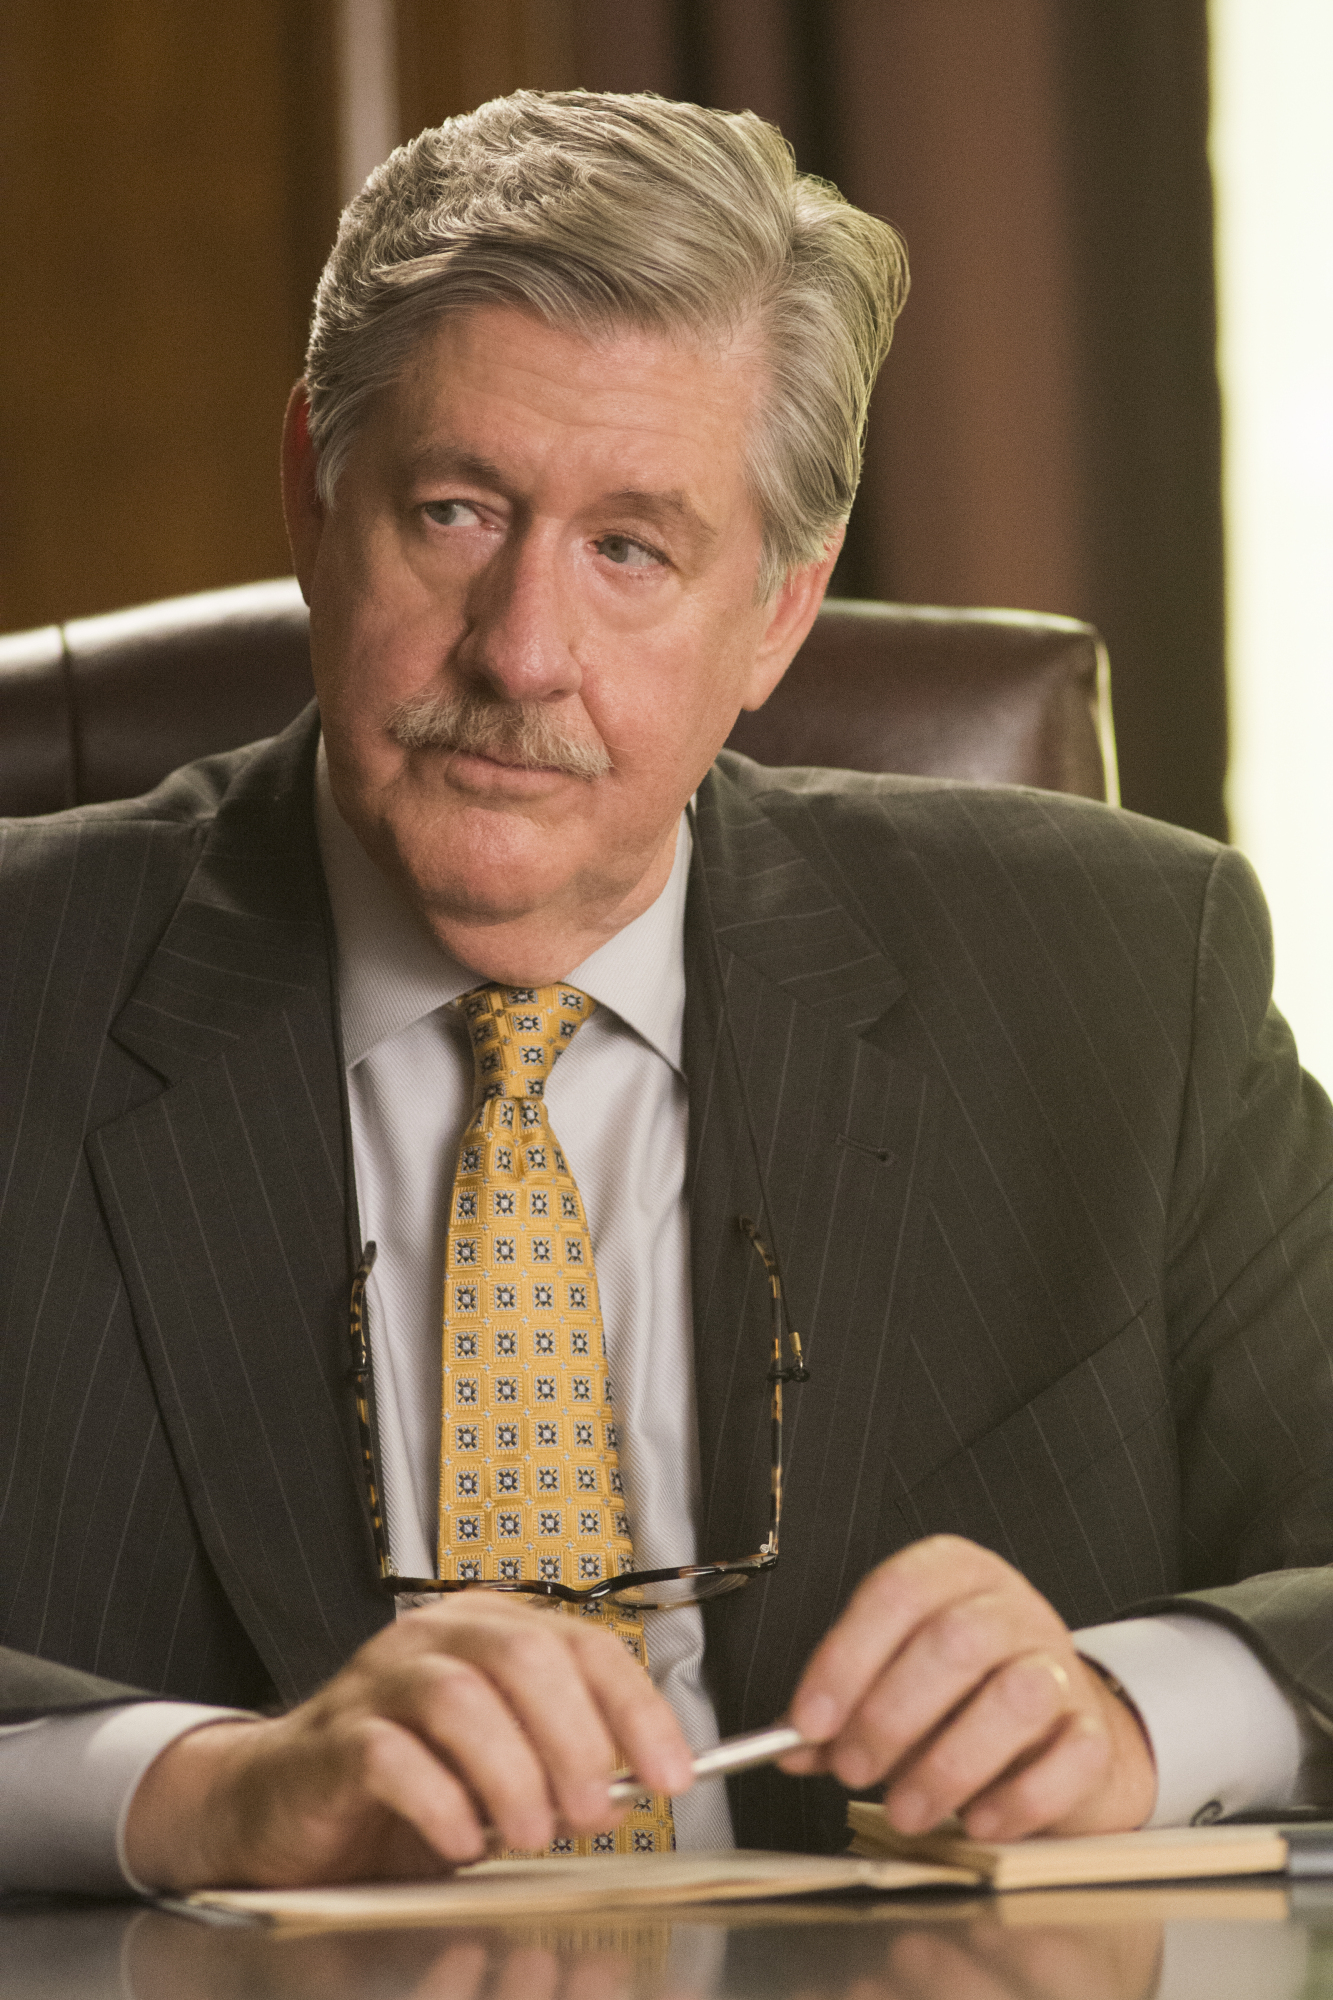 Edward Herrmann as Lionel Deerfield on 'The Good Wife'